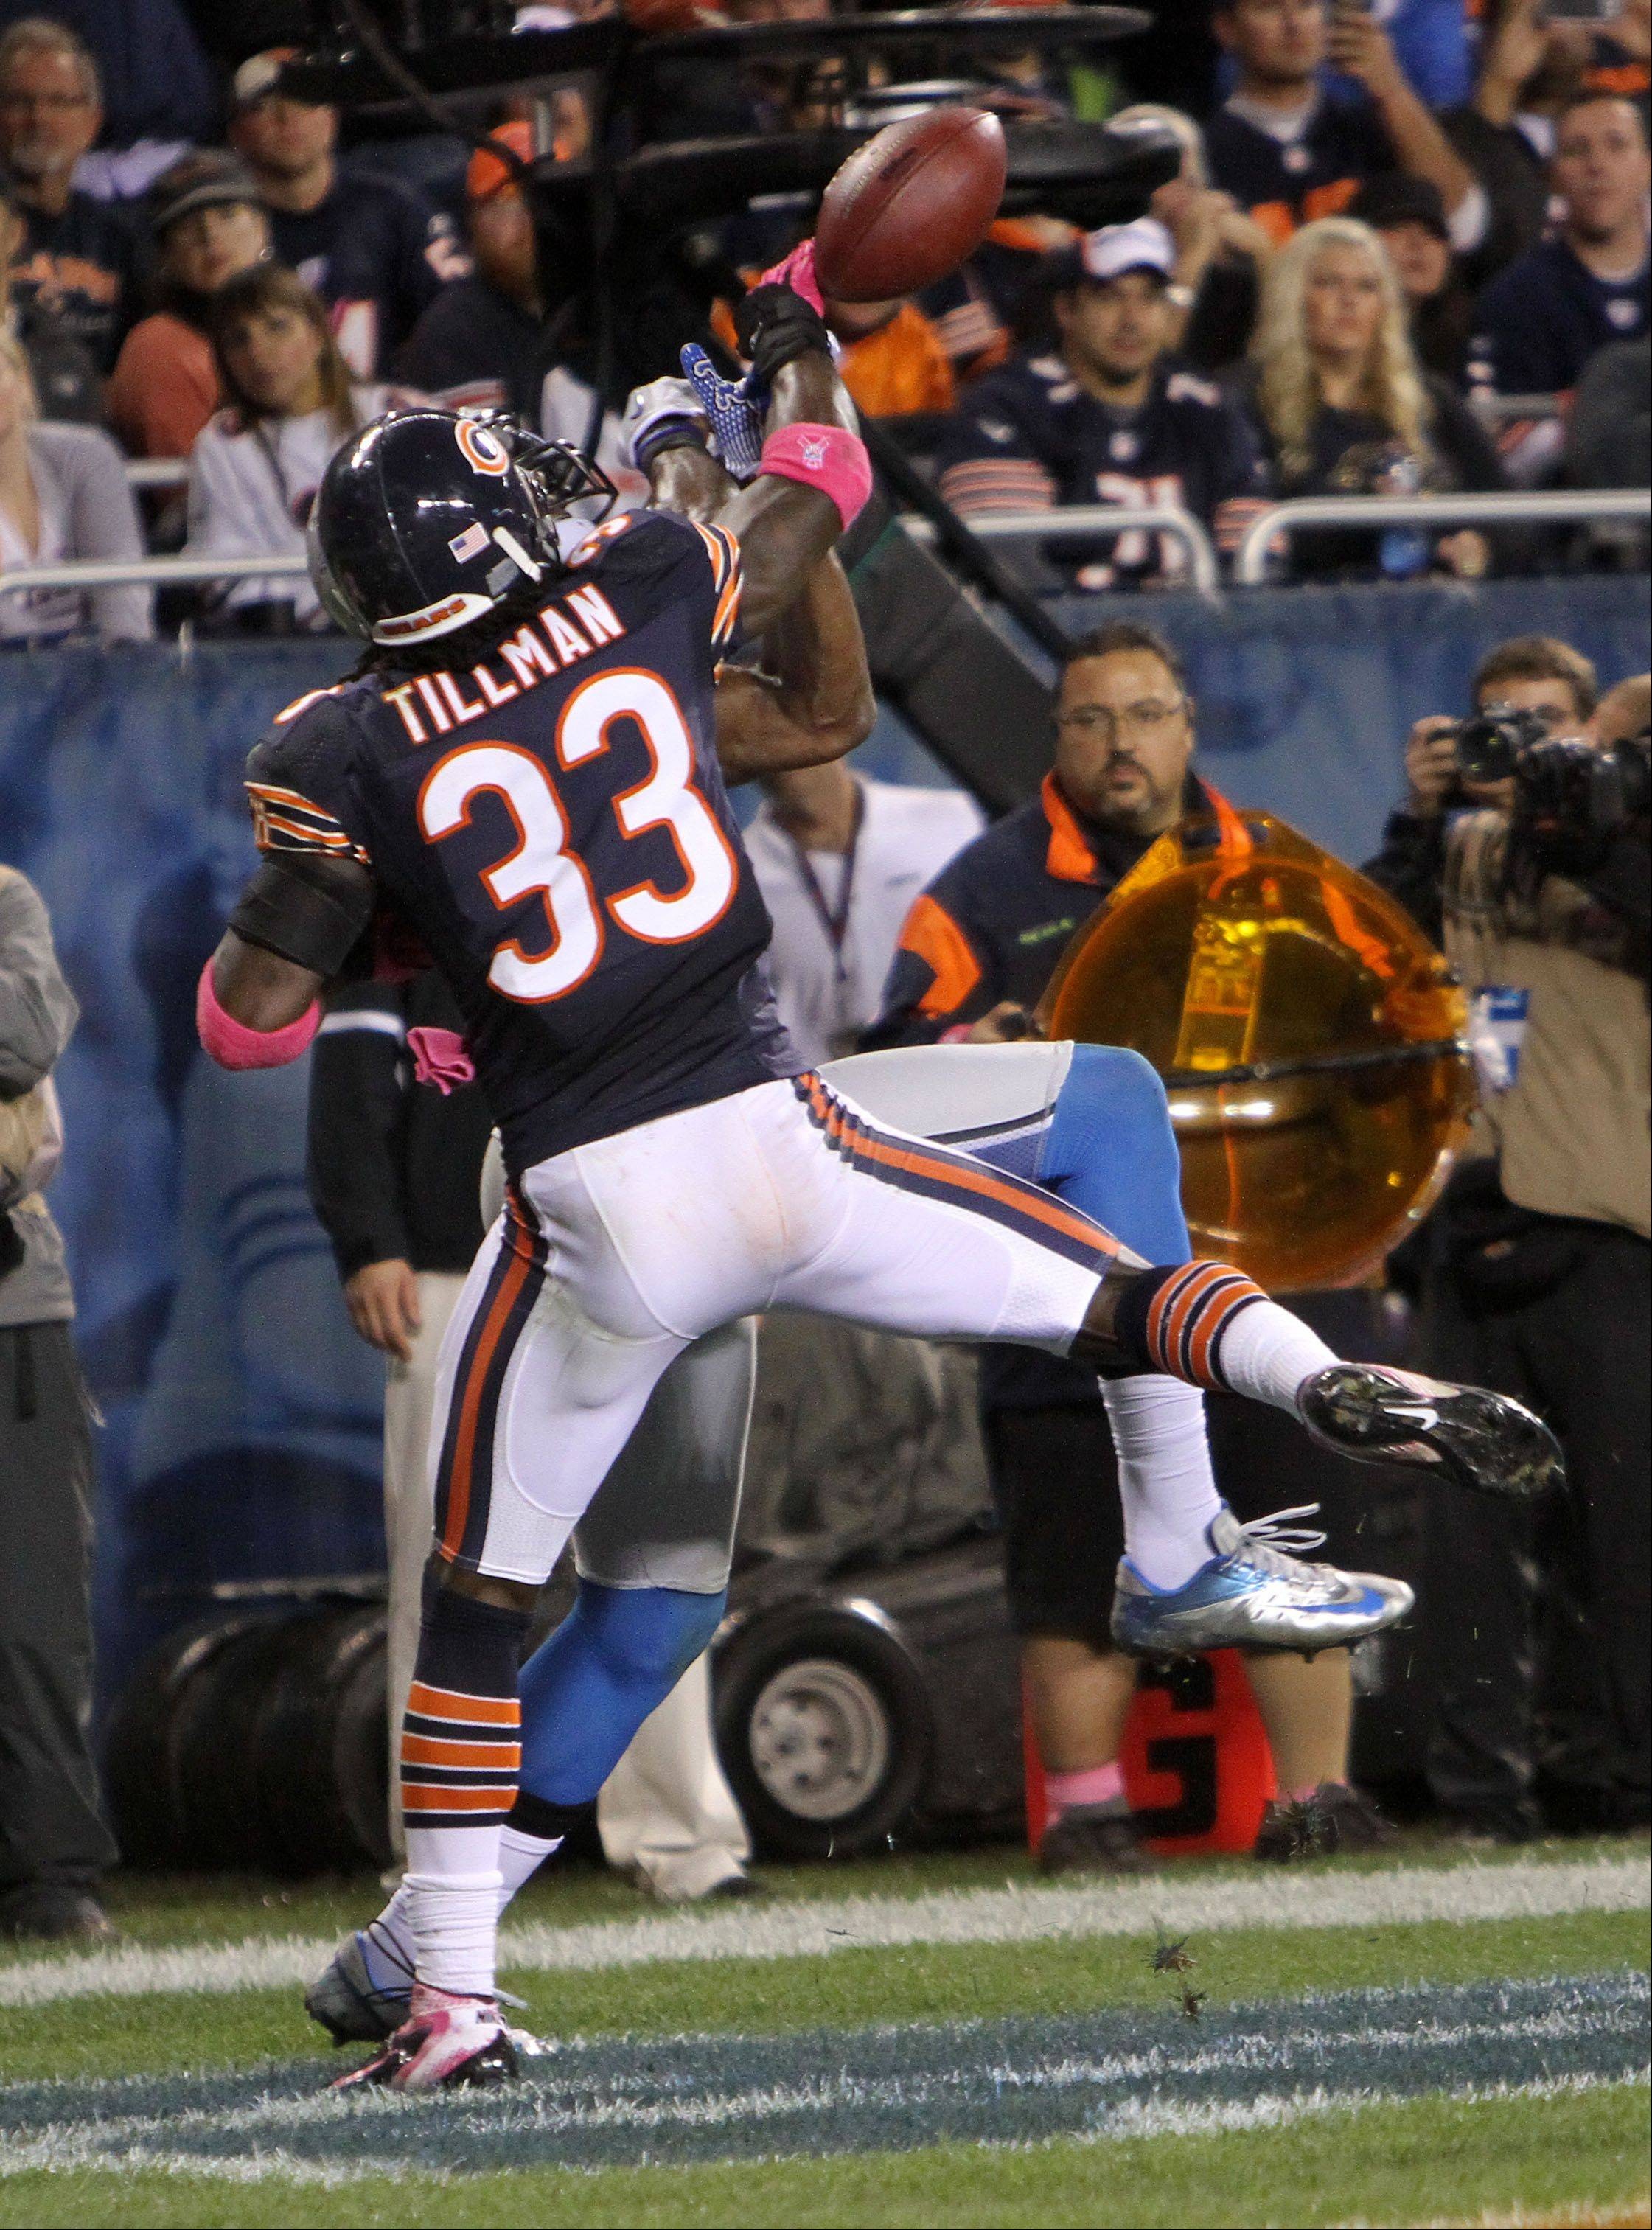 Cornerback Charles Tillman breaks up a pass play in the end zone during the Bears' 13-7 win over the Lions on Monday night at Soldier Field.